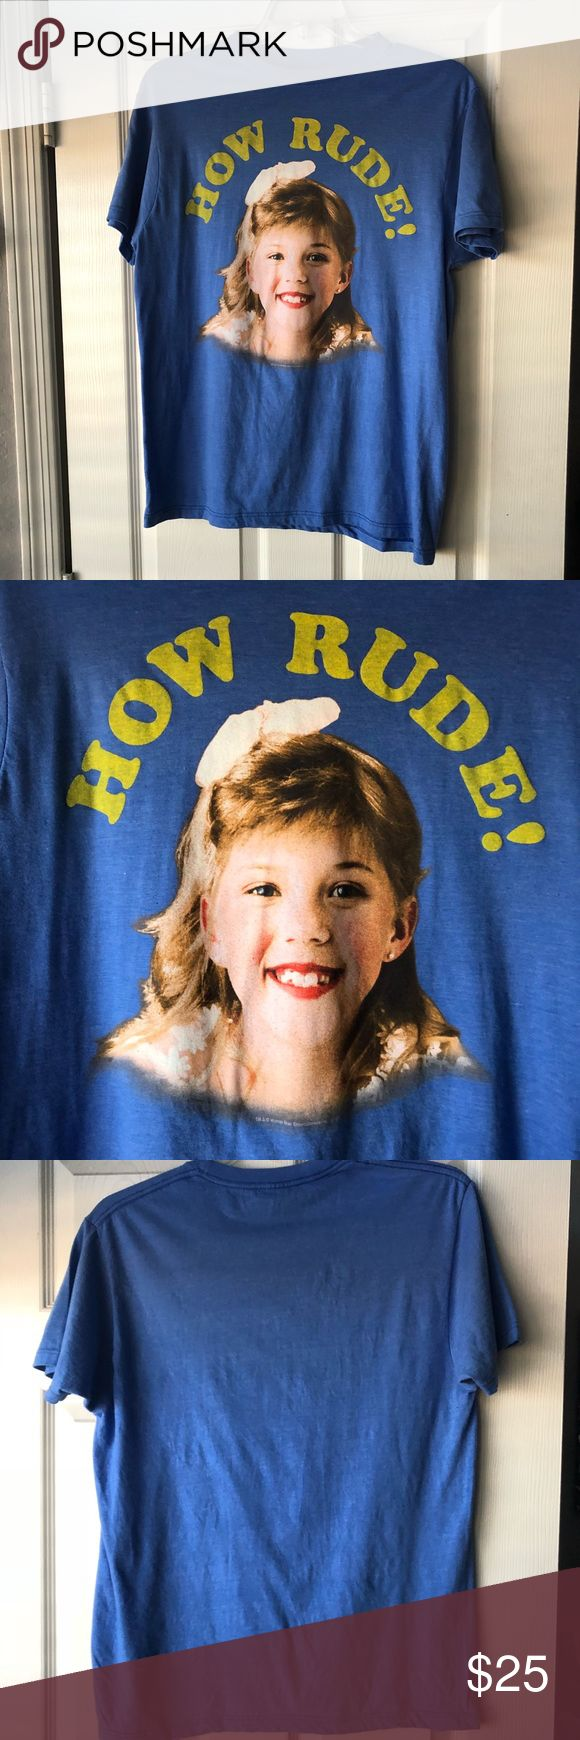 How rude! Stephanie Tanner from Full House shirt Only worn a couple of times and it is in excellent condition  Size men's large  Purchased at an urban outfitters a few years ago  Brand is ripple junction Urban Outfitters Shirts Tees - Short Sleeve